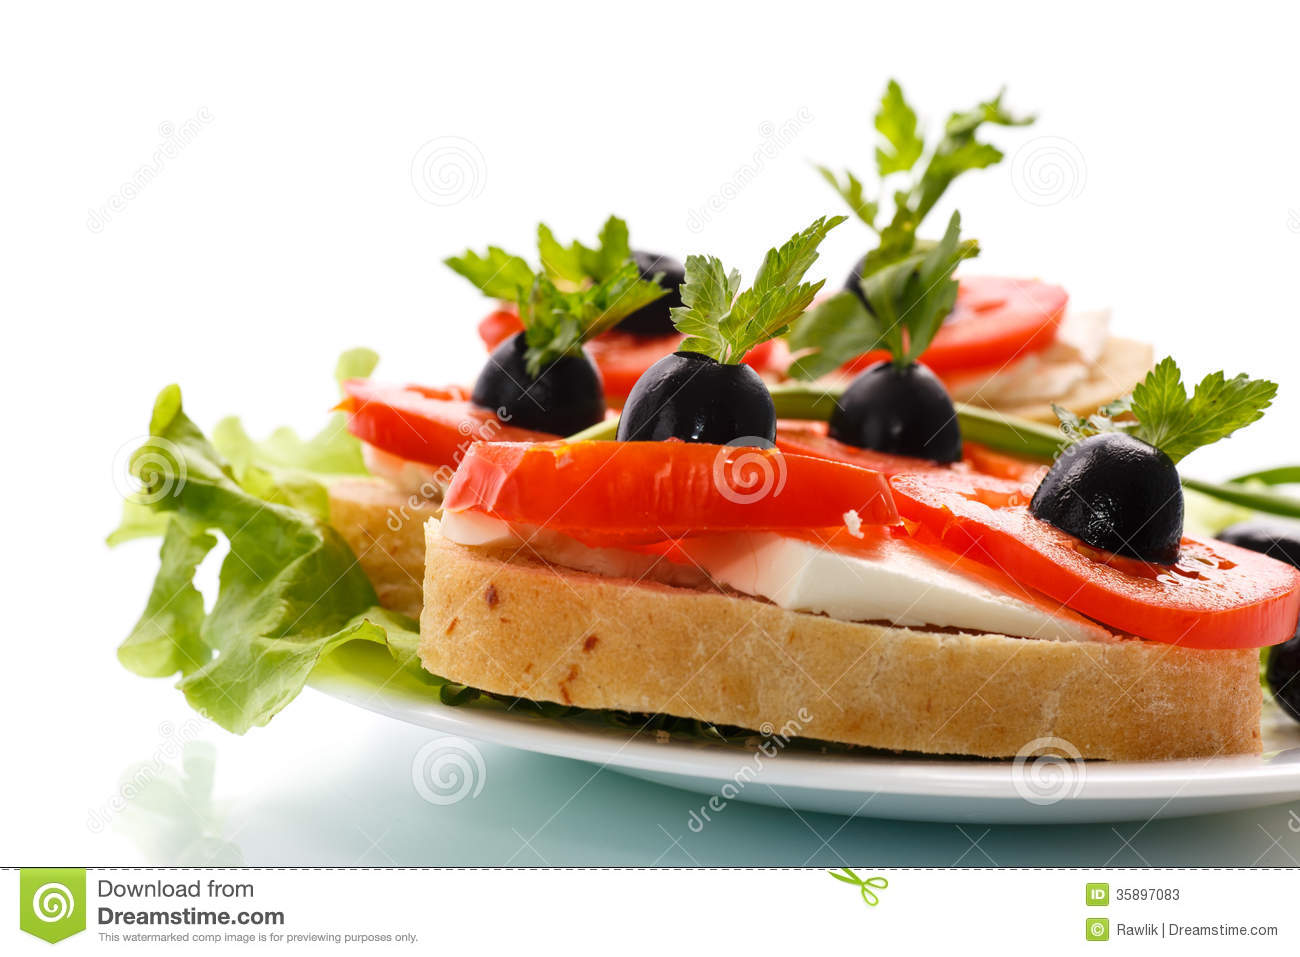 Canape stock photos image 35897083 for Canape with cheese